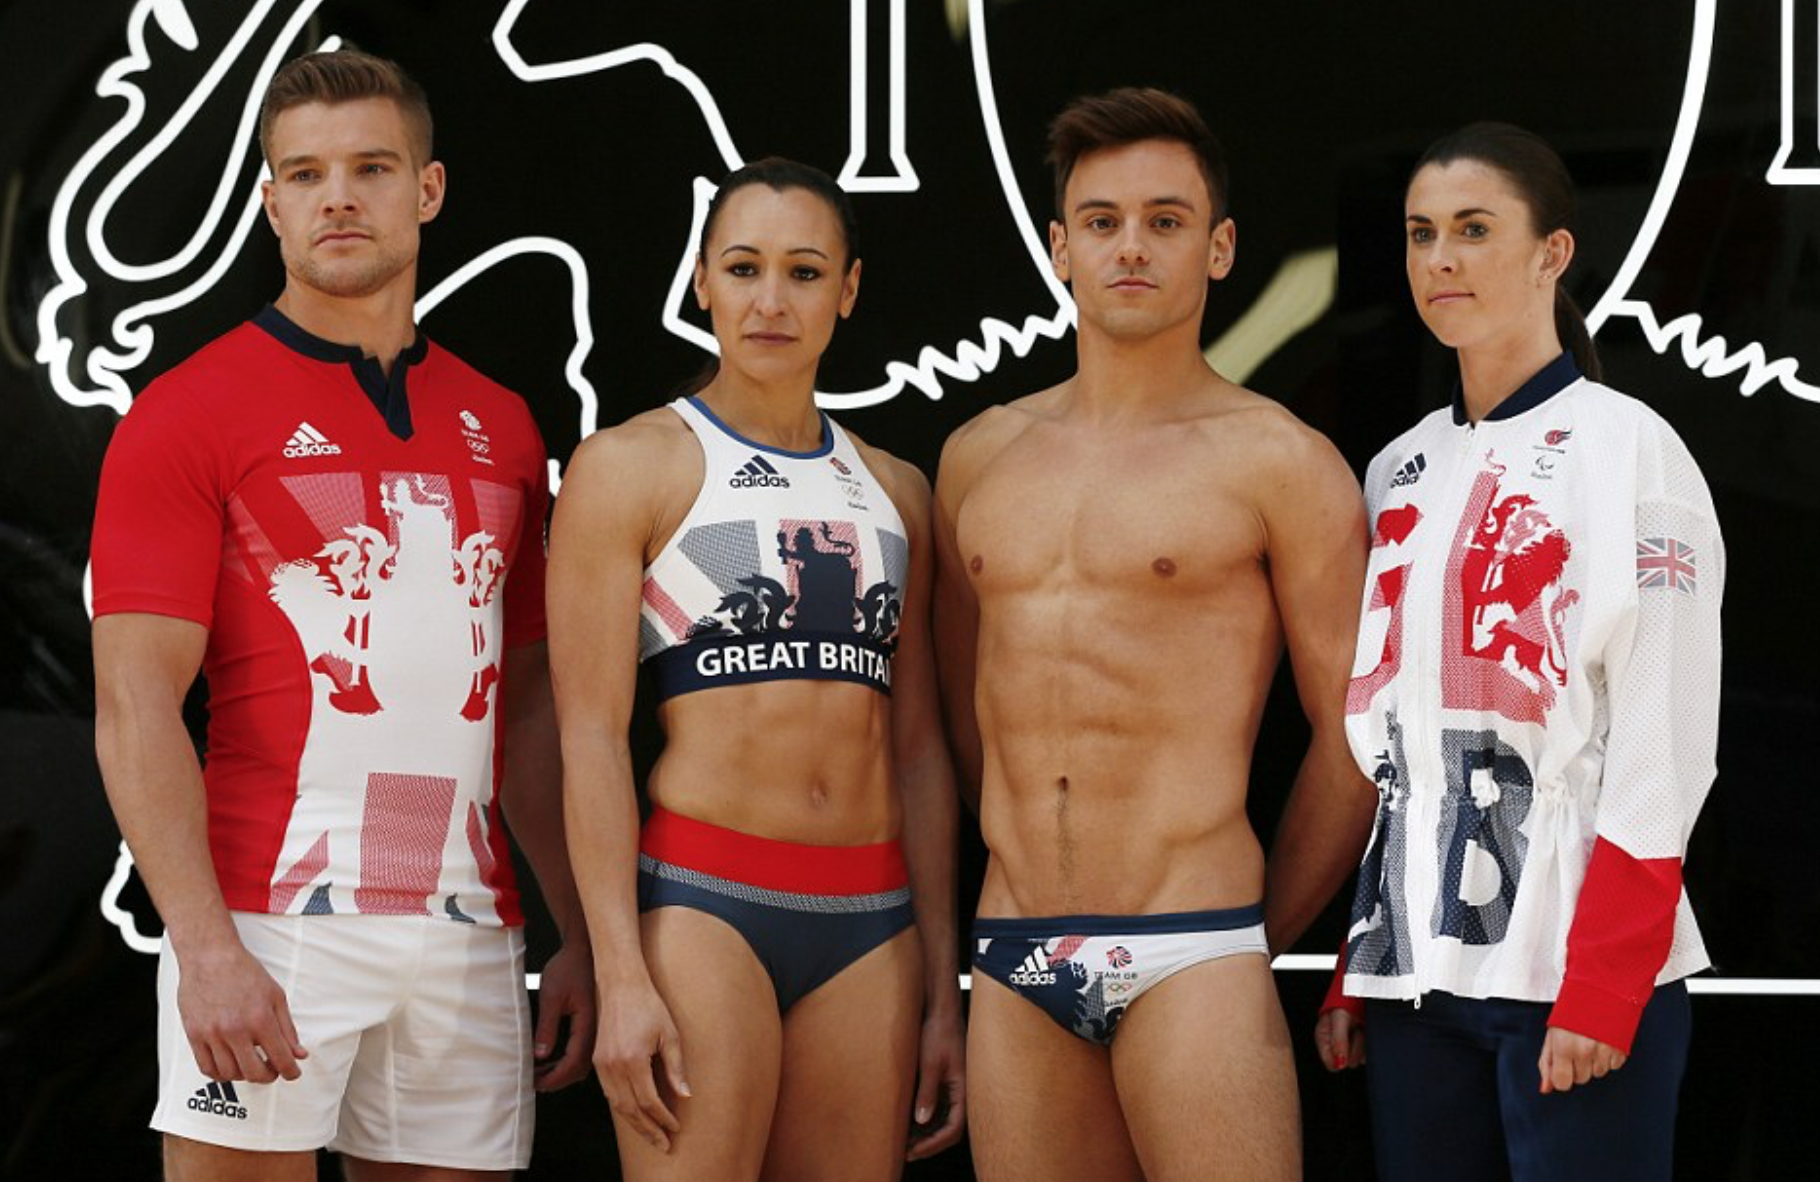 <b>TEAM GB OLYMPICS KIT...</b>